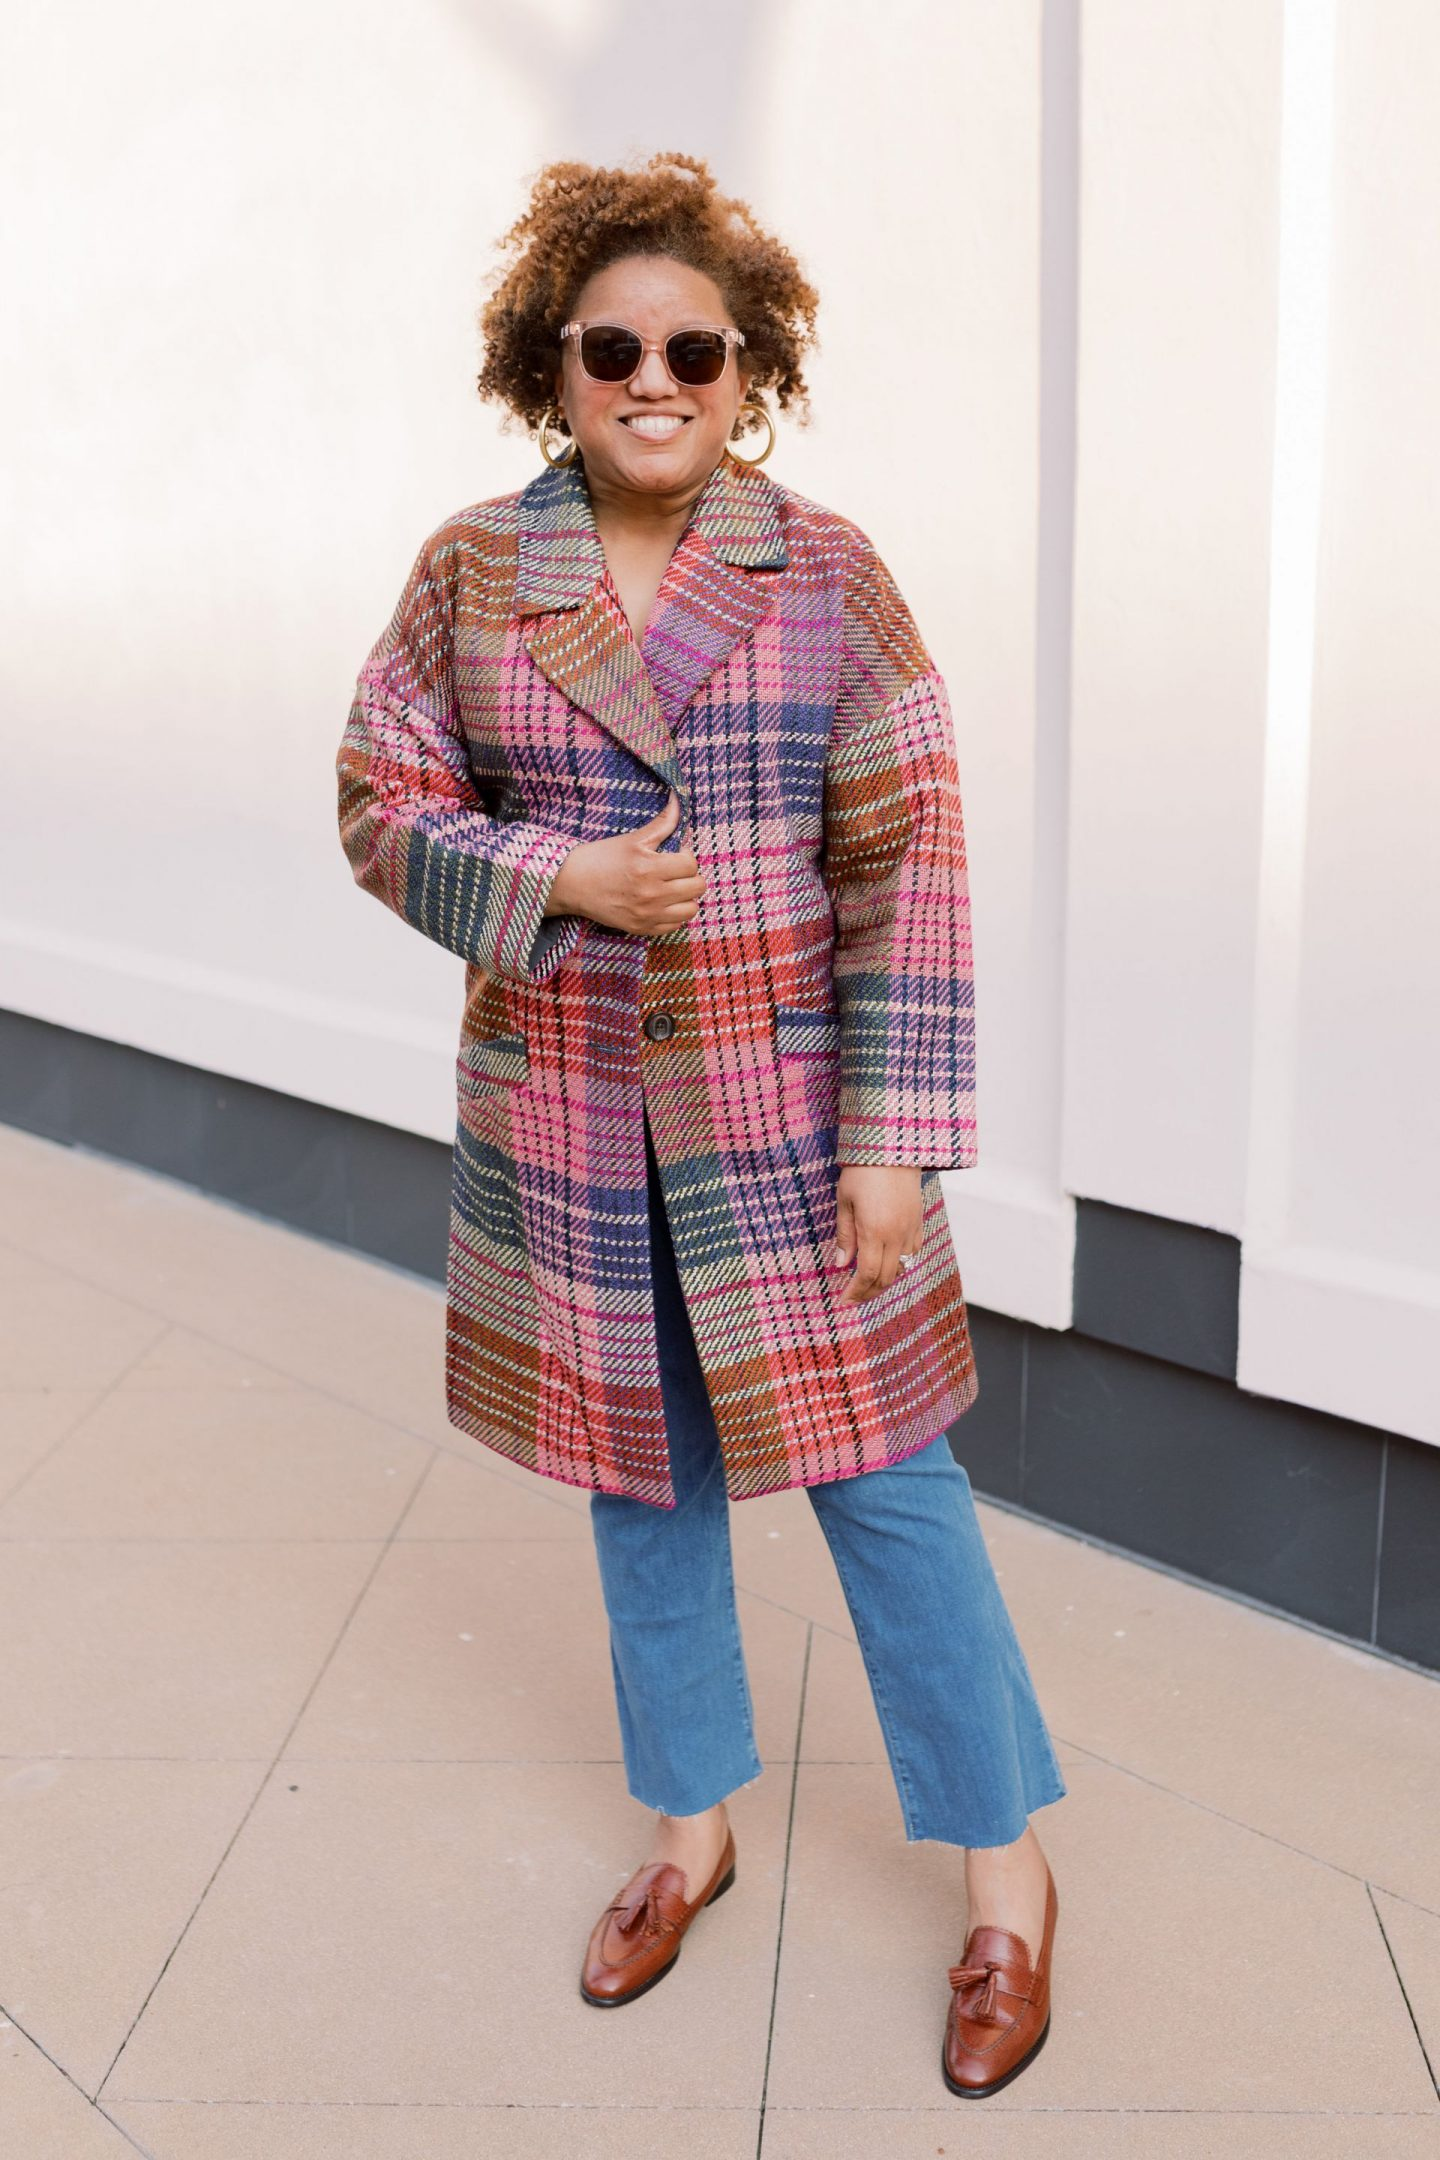 Friday Five by popular Kentucky fashion blog, Really Rynetta: image of a woman standing outside and wearing a Nordstrom Halogen Plaid Tweed Coat, Nordstrom Madewell Cali High Waist Demi Boot Jeans, and J. Crew Academy loafers with tassels.